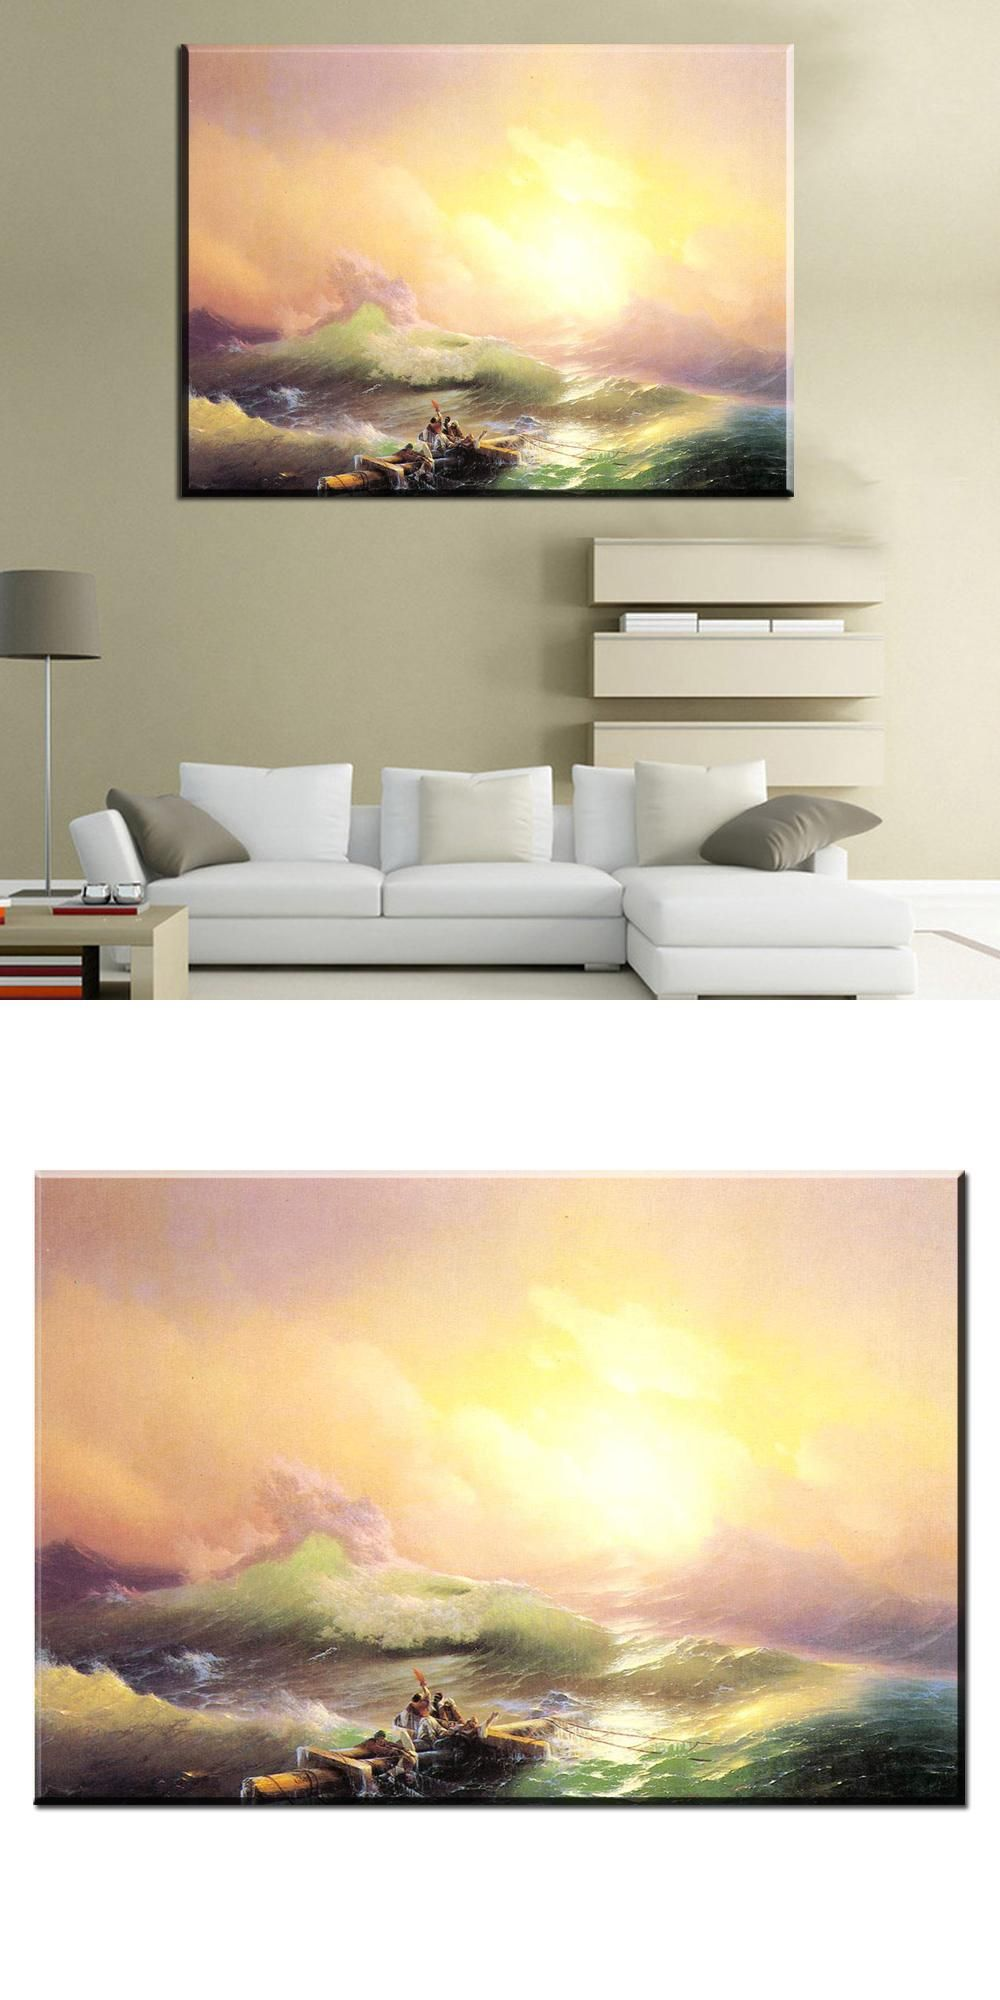 Visit to Buy] xh1145 ivan aivazovsky the ninth wave scenery art ...